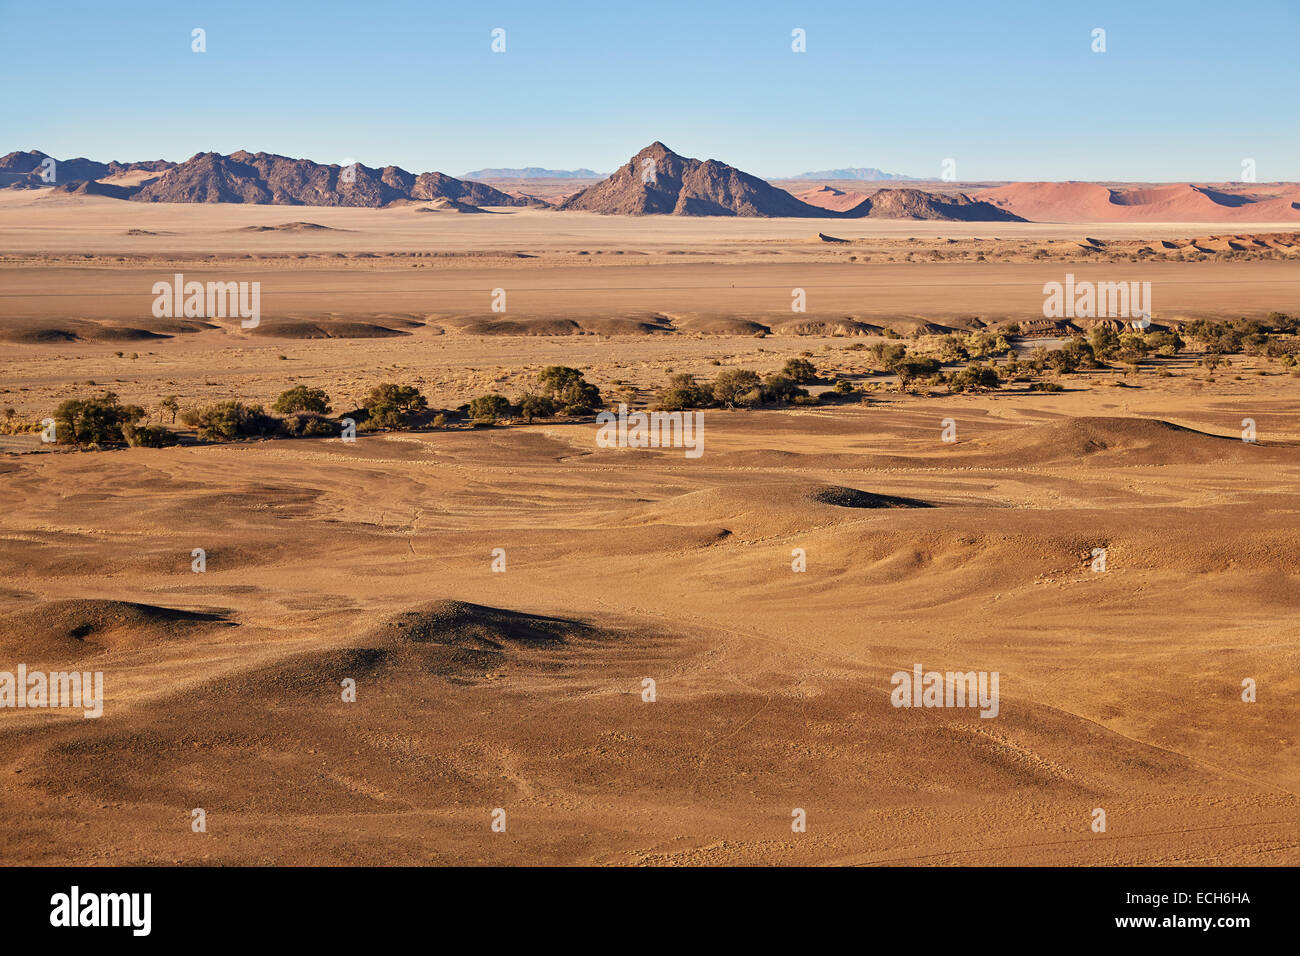 Le Naukluft Mountains, Namib-Naukluft National Park, Désert du Namib, Namibie Photo Stock